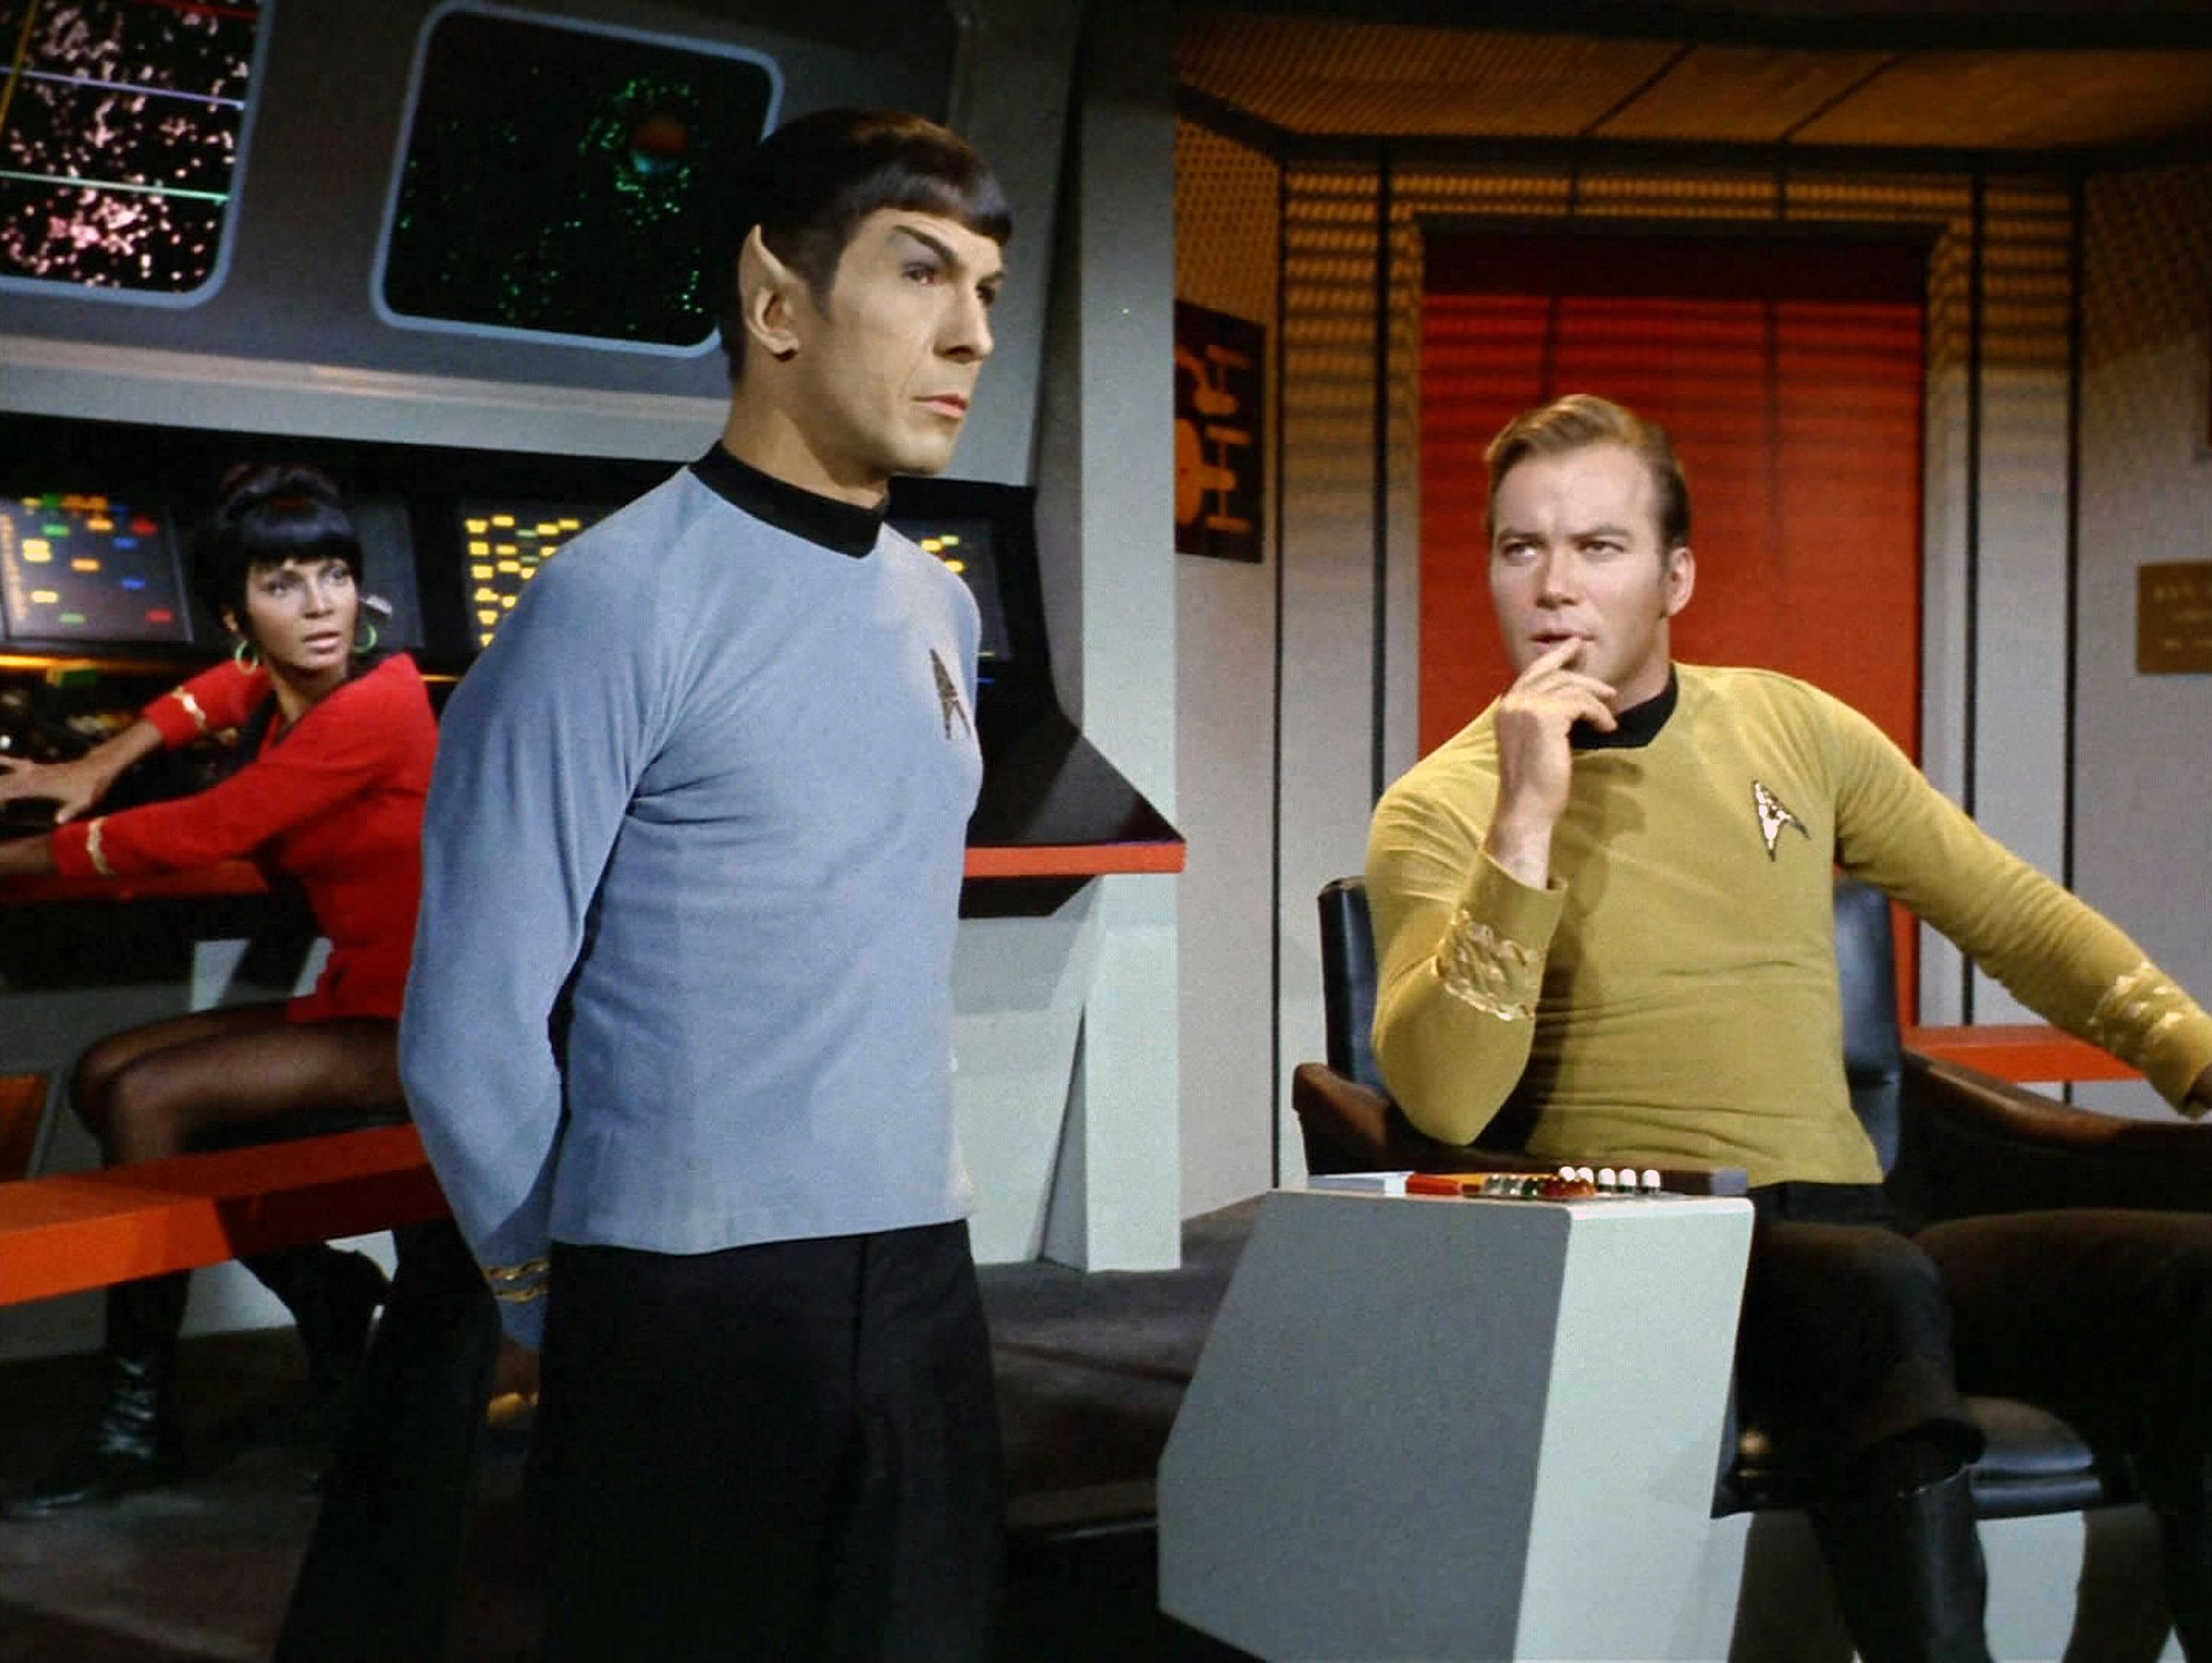 Nichelle Nichols as Lt. Uhura, Leonard Nimoy as Commander Spock (Mr. Spock) and William Shatner as Captain James T. Kirk on the bridge of the USS Enterprise on the Star Trek: The Original Series episode